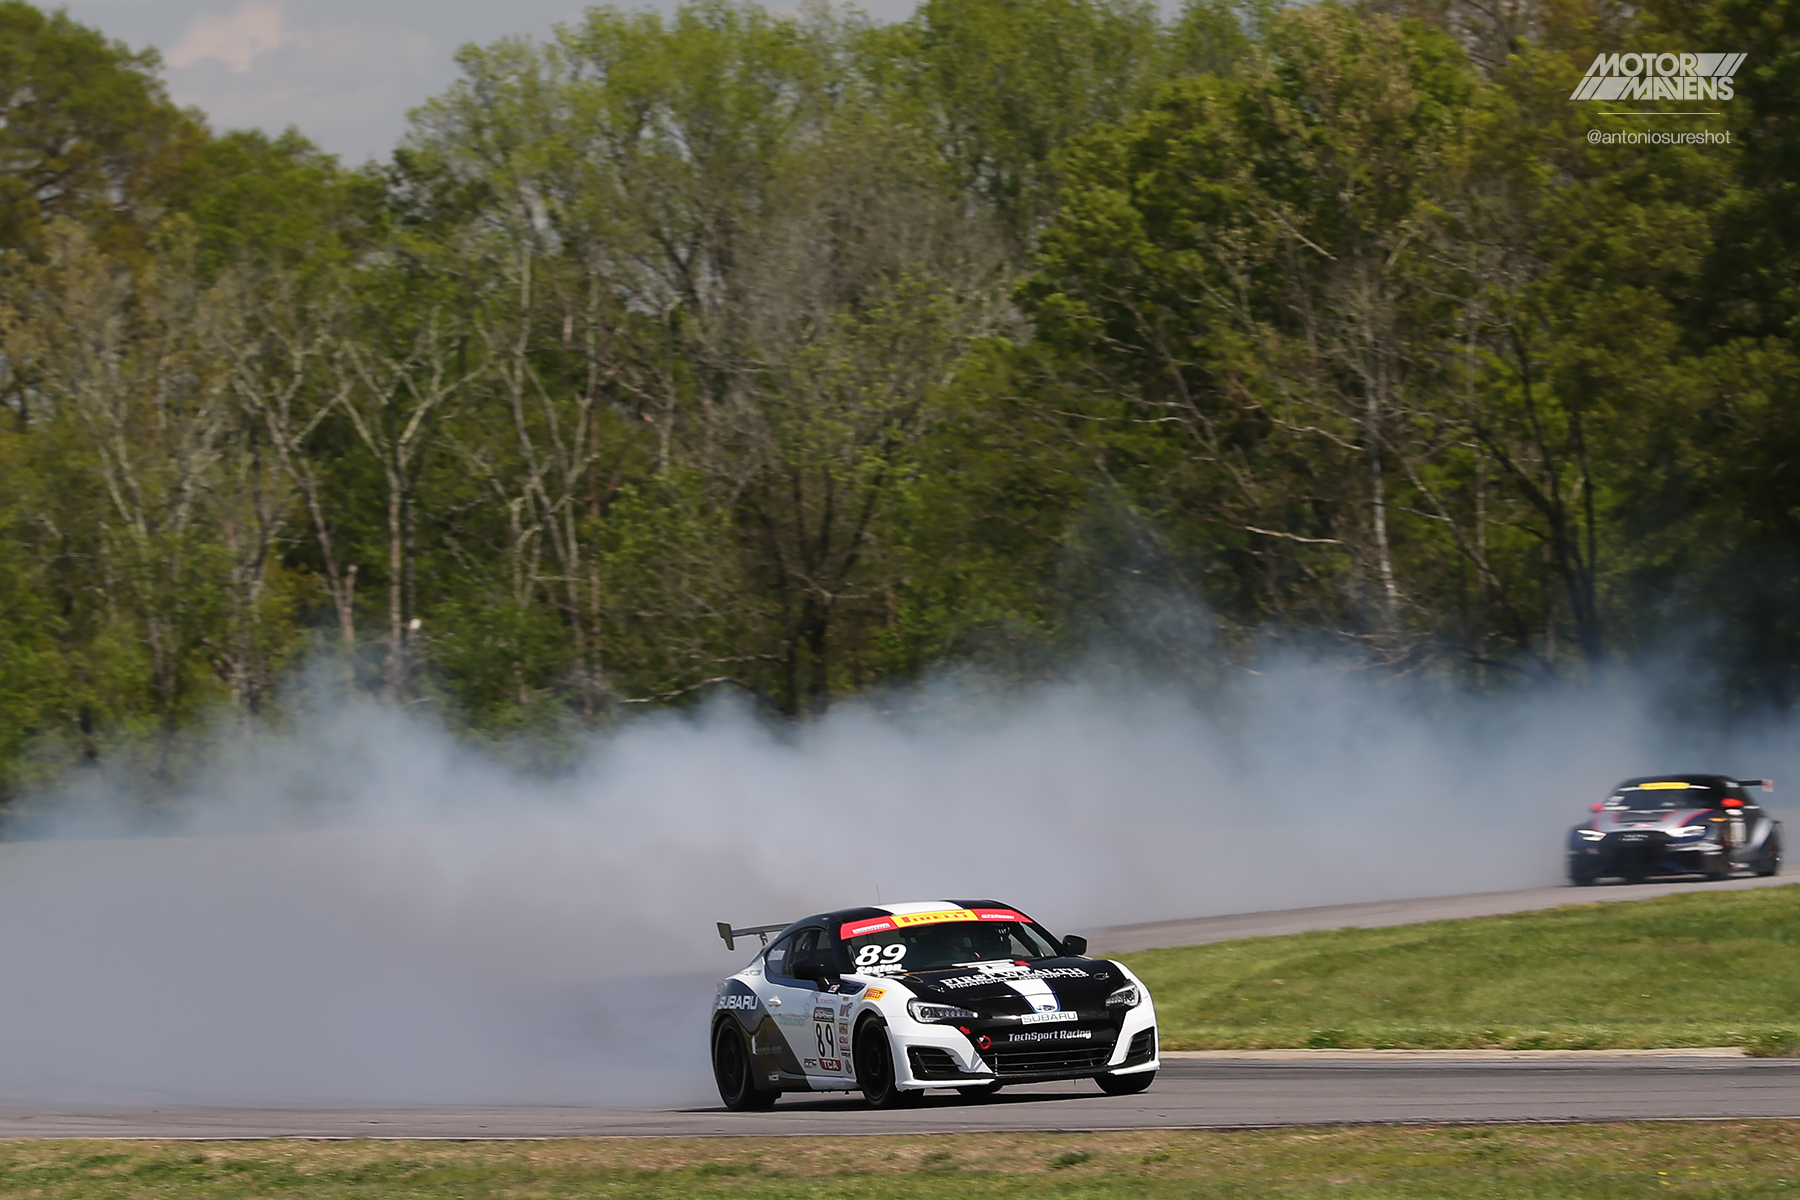 ZC6, BRZ, Prestone, Subaru BRZ, Tech Sport Racing, PJ Groenke, Pirelli World Challenge Virginia International Raceway, VIR, PWC, TCR